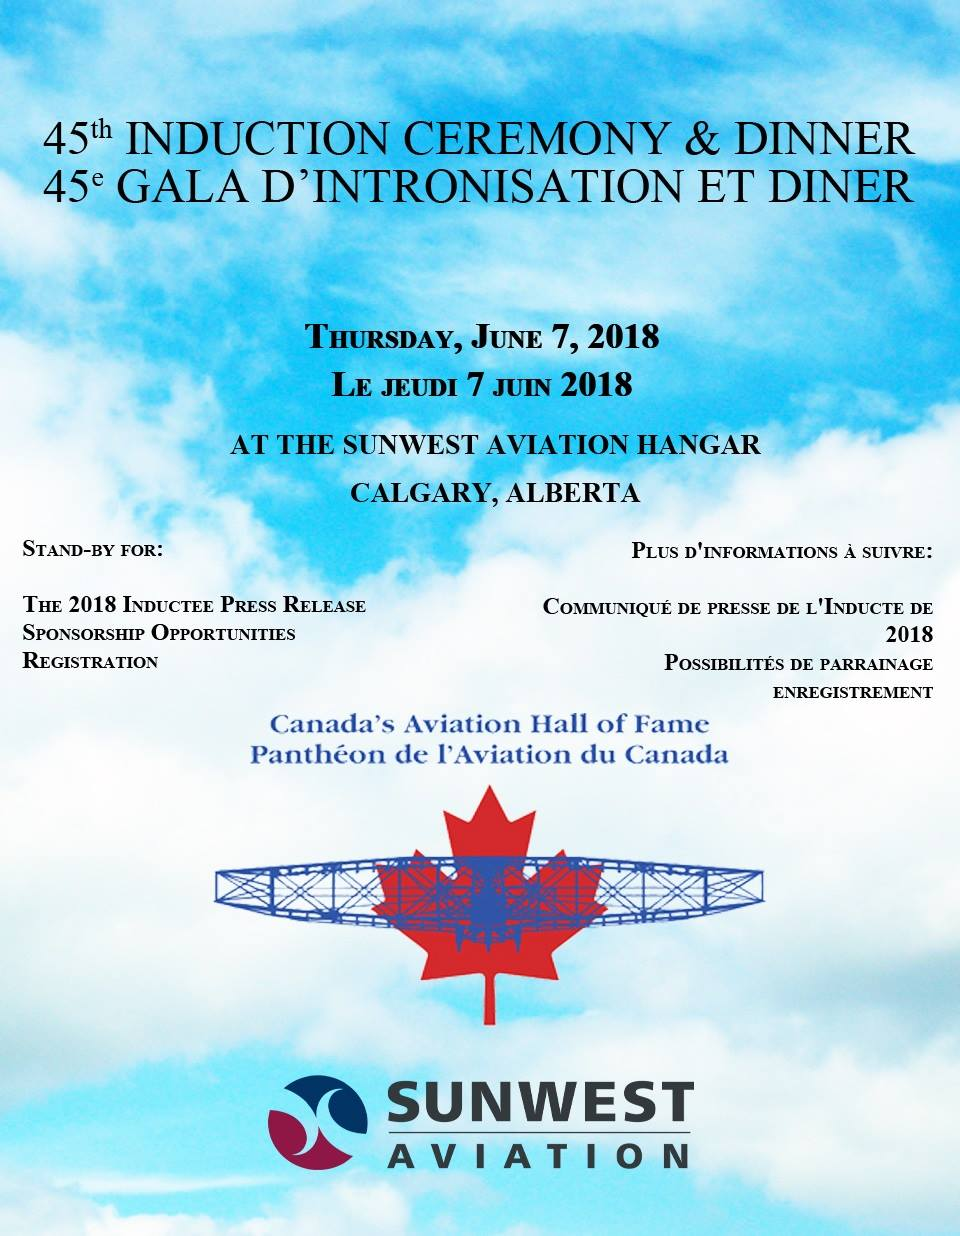 Canada's Aviation Hall of Fame will induct four new members in 2018 at the 45th Induction Ceremony and Dinner to be held on Thursday, June 7, 2018, in the Sunwest Aviation hangar at the Calgary International Airport. IMAGE: CAHF